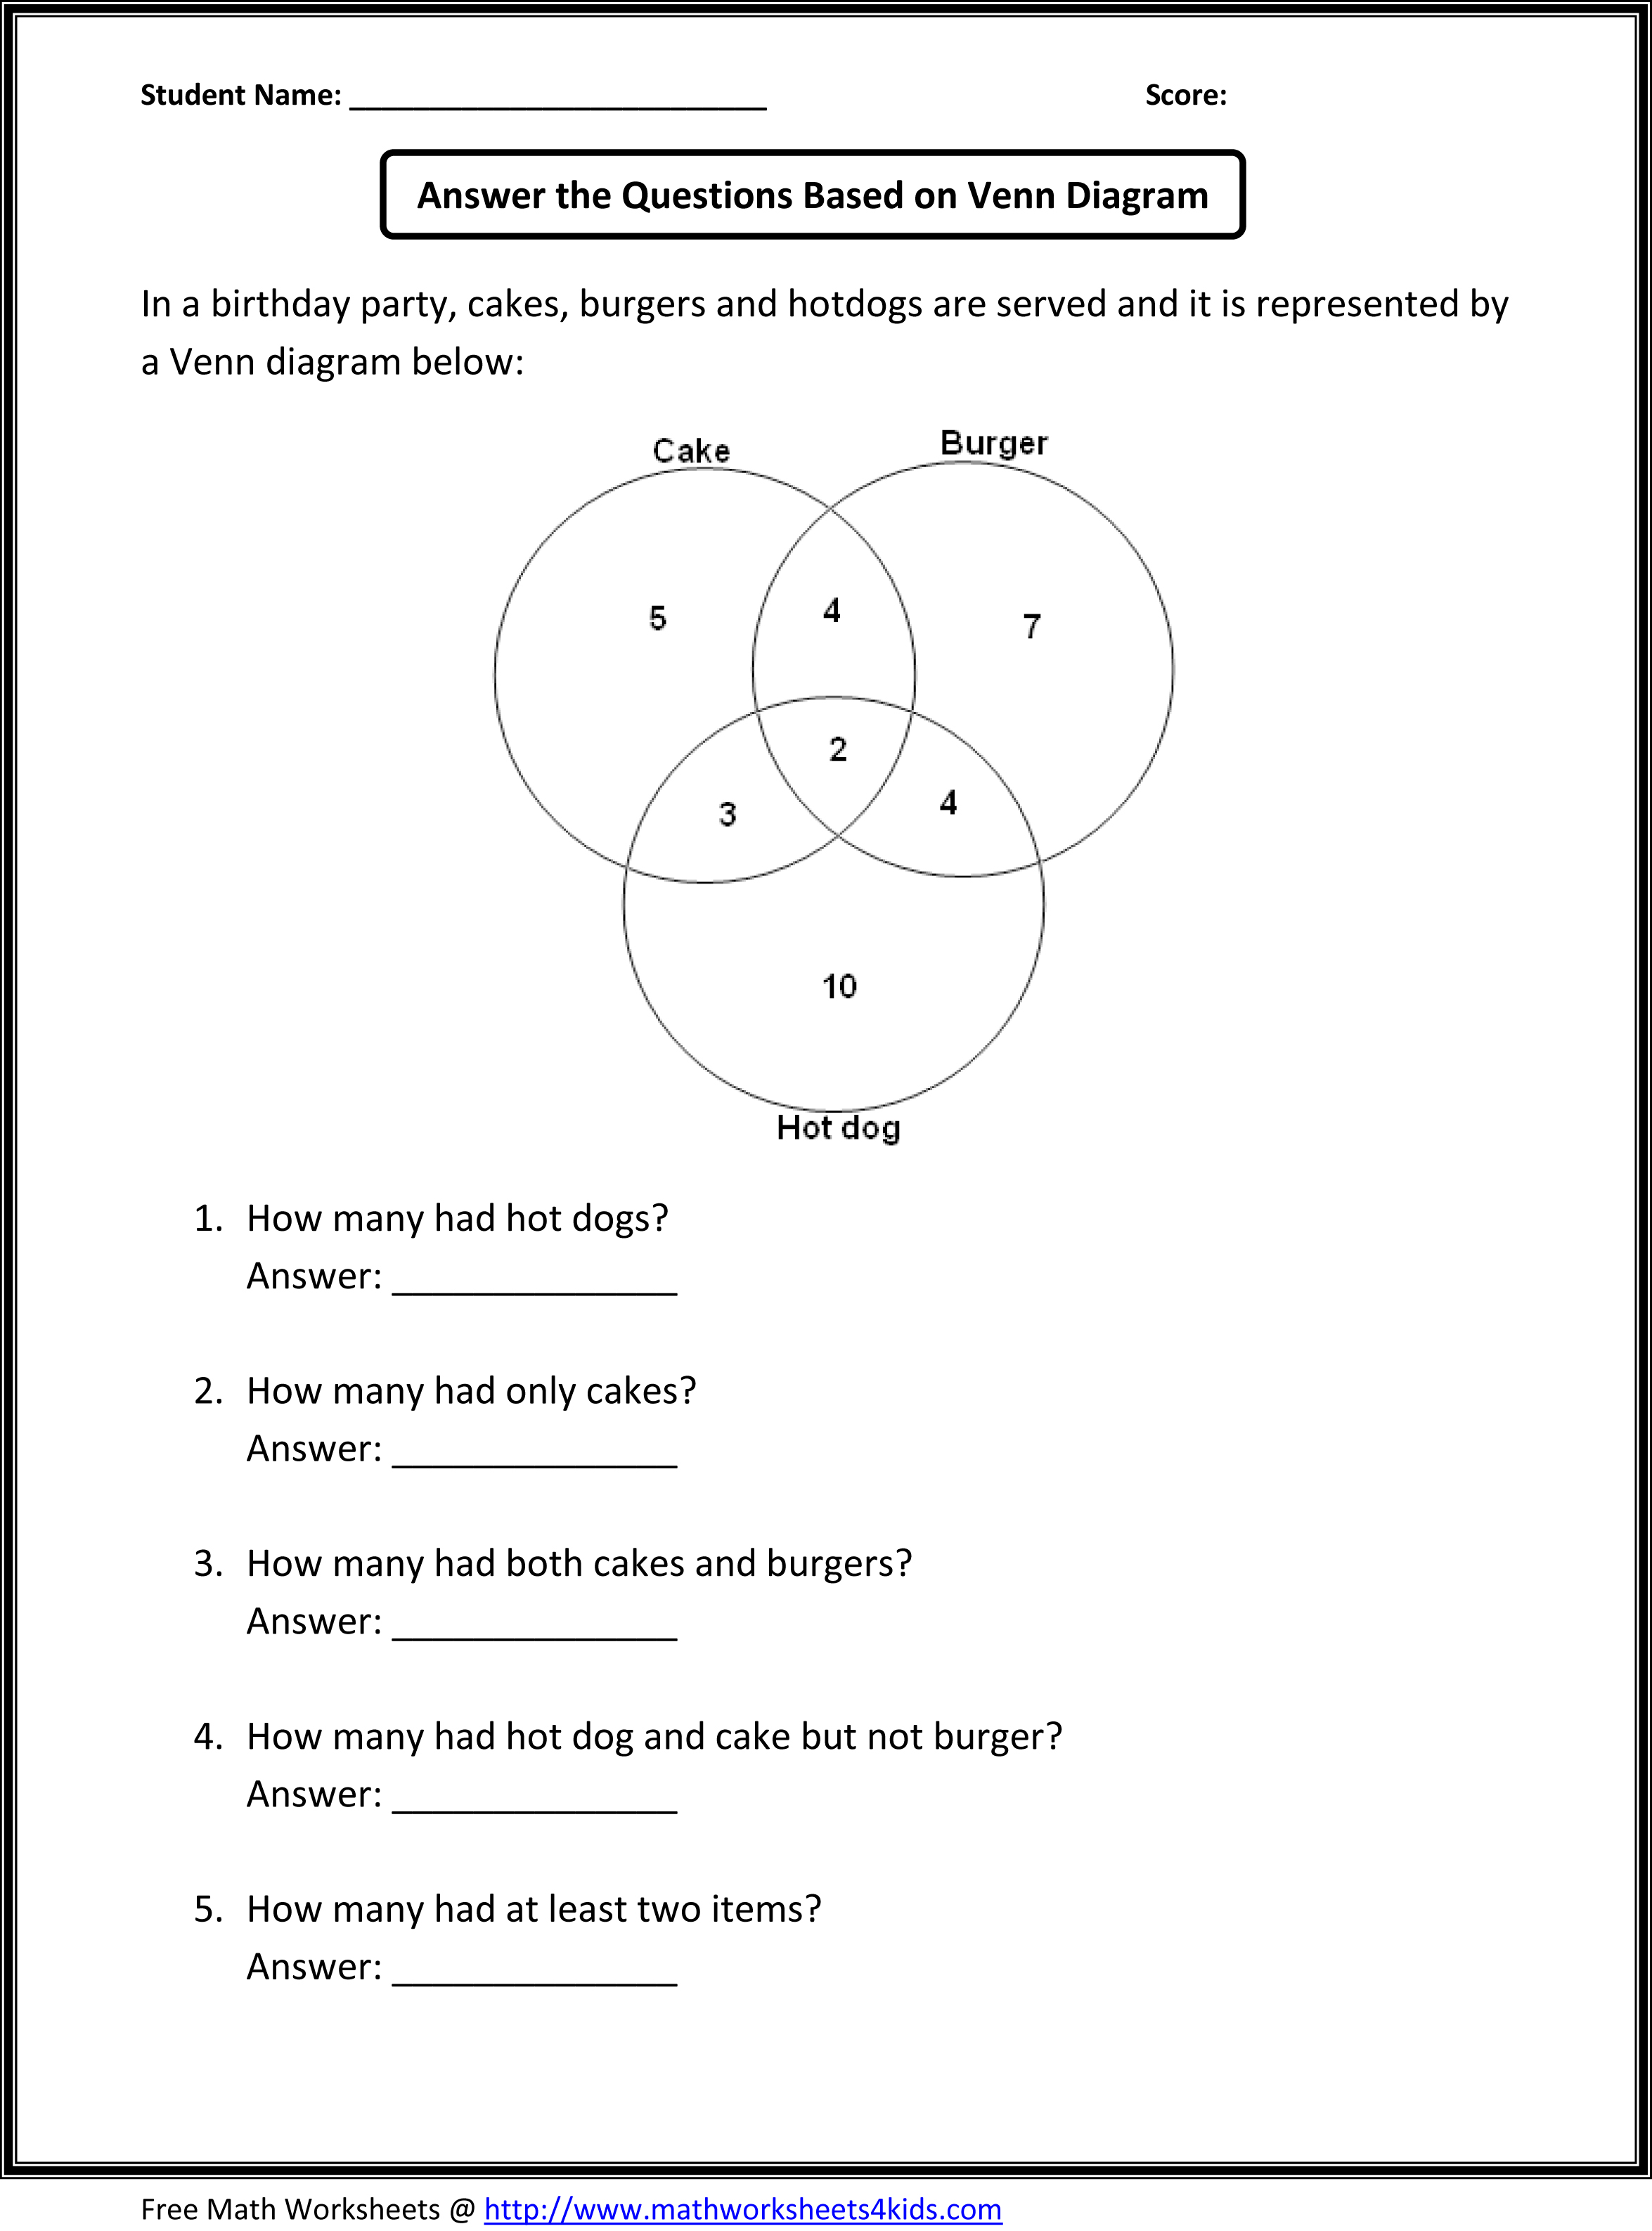 6 Best Images Of Gcf And Lcm Worksheets With Answers